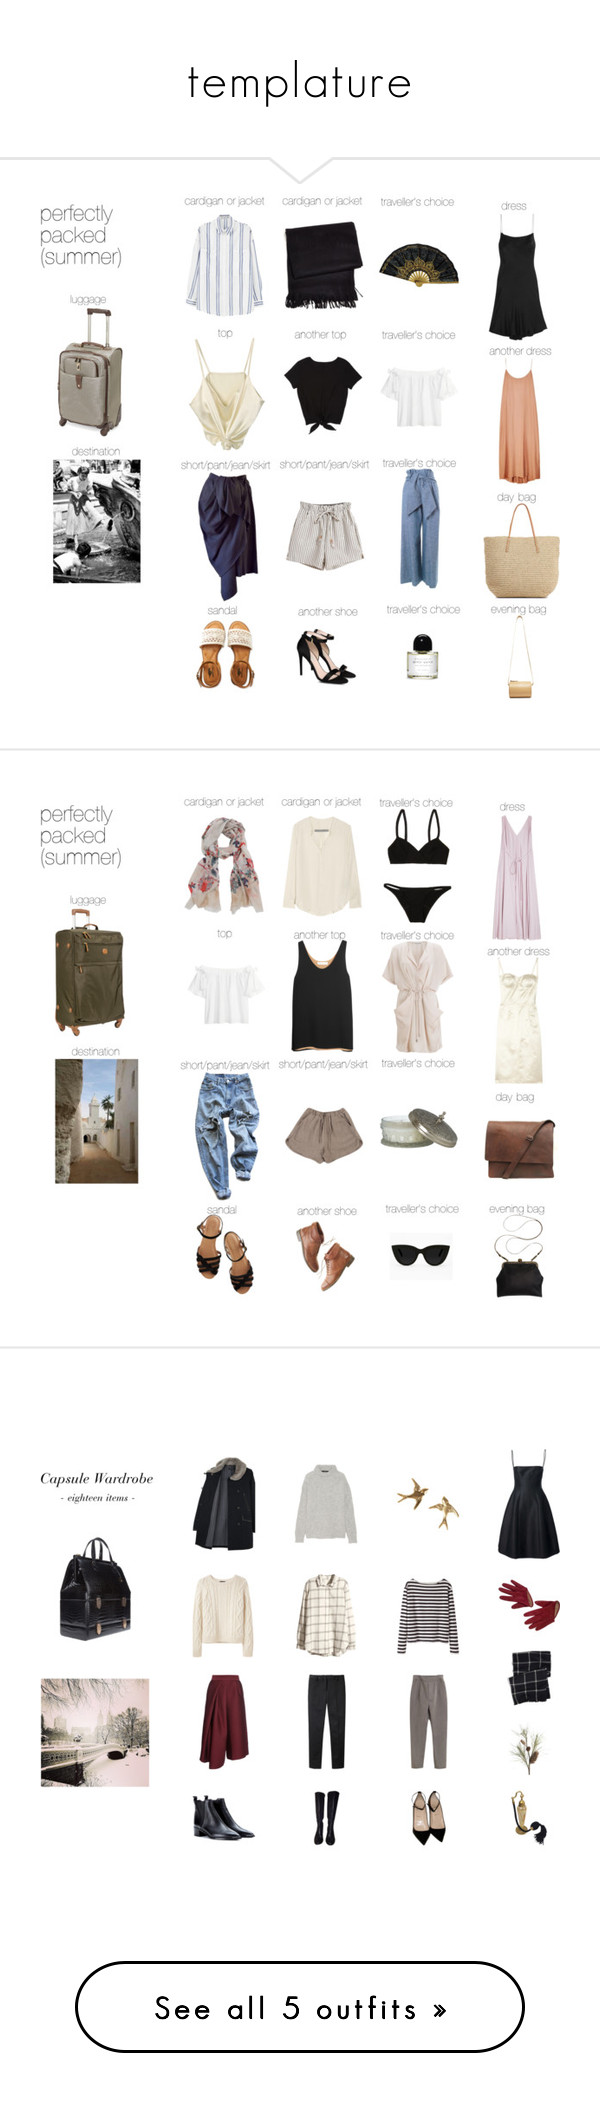 """templature"" by mermaidism ❤ liked on Polyvore featuring Summer, vacation, rome, iwishthiswasmylife, template, Morocco, Winter and winterwardrobe"